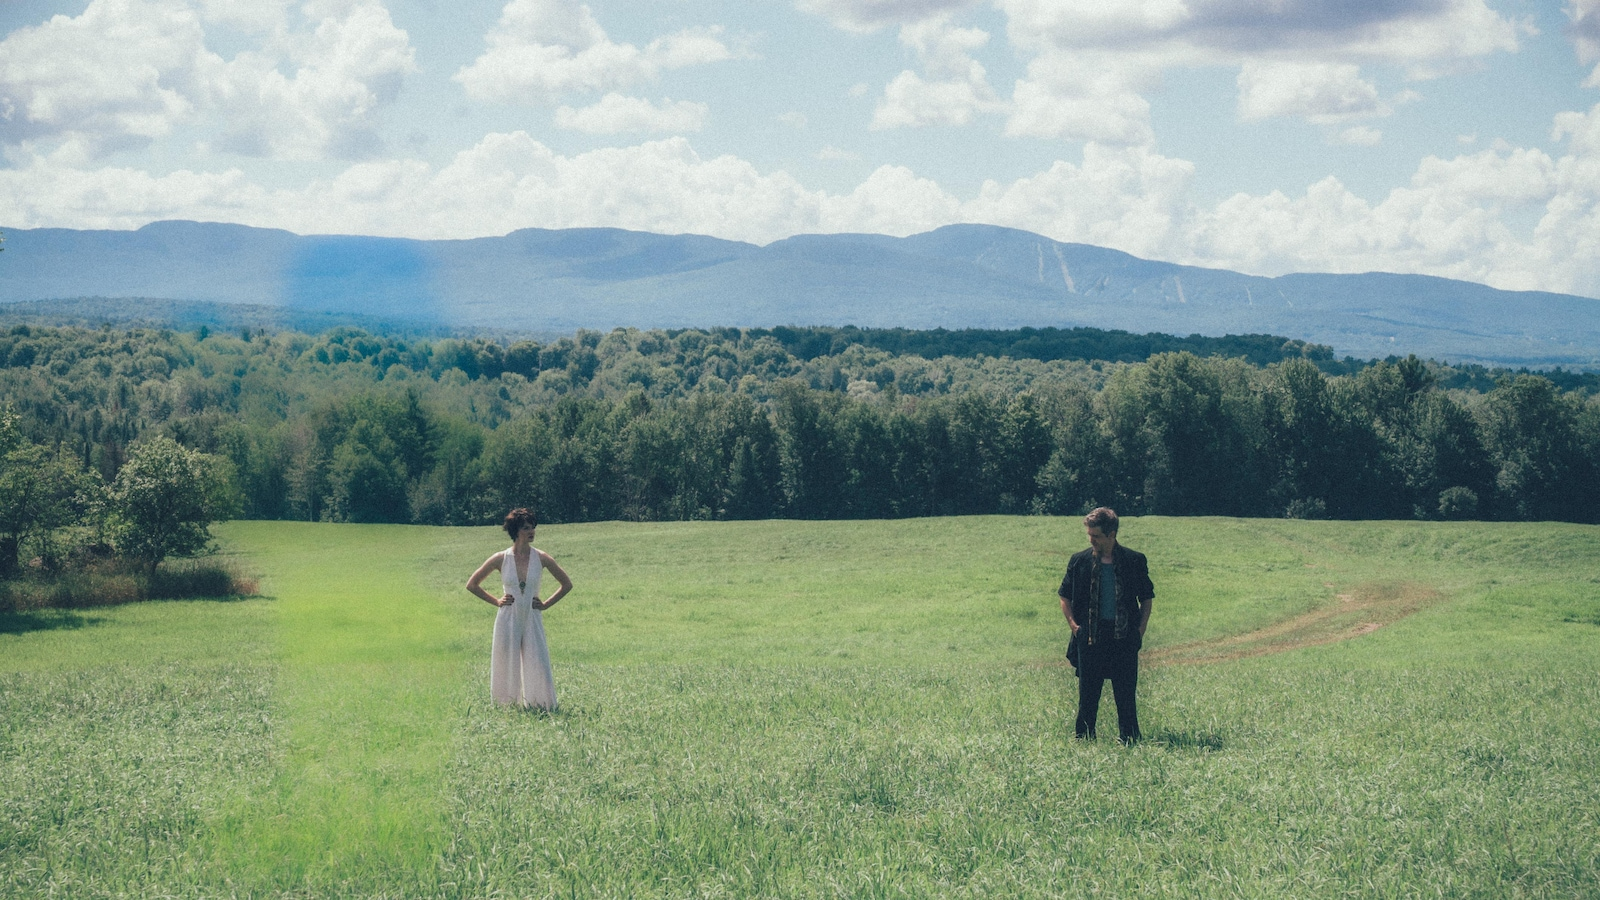 A man (Maxim Judit) and a woman in a field far away from each other.